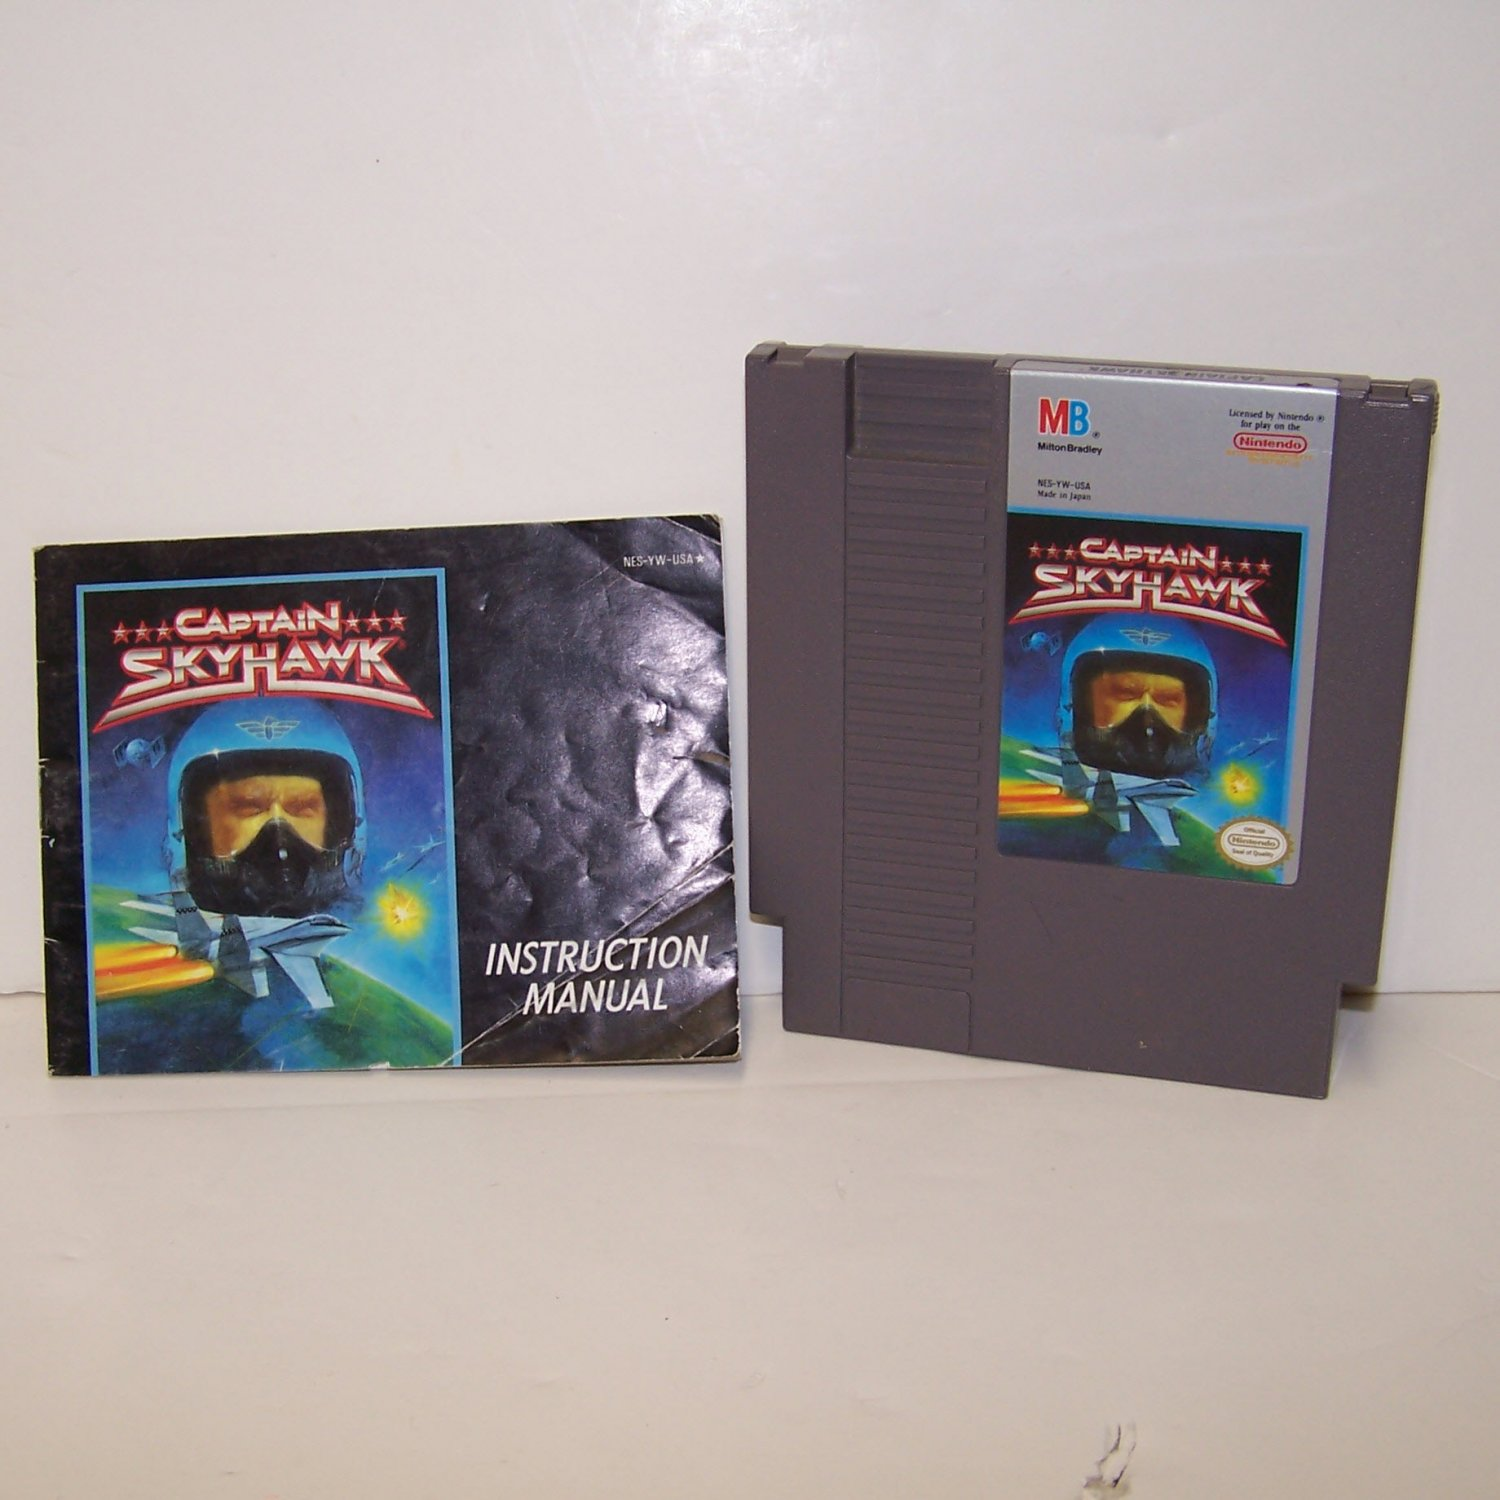 Captain Skyhawk Original 8-bit Nintendo NES Game Cartridge plus instructions with dust cover